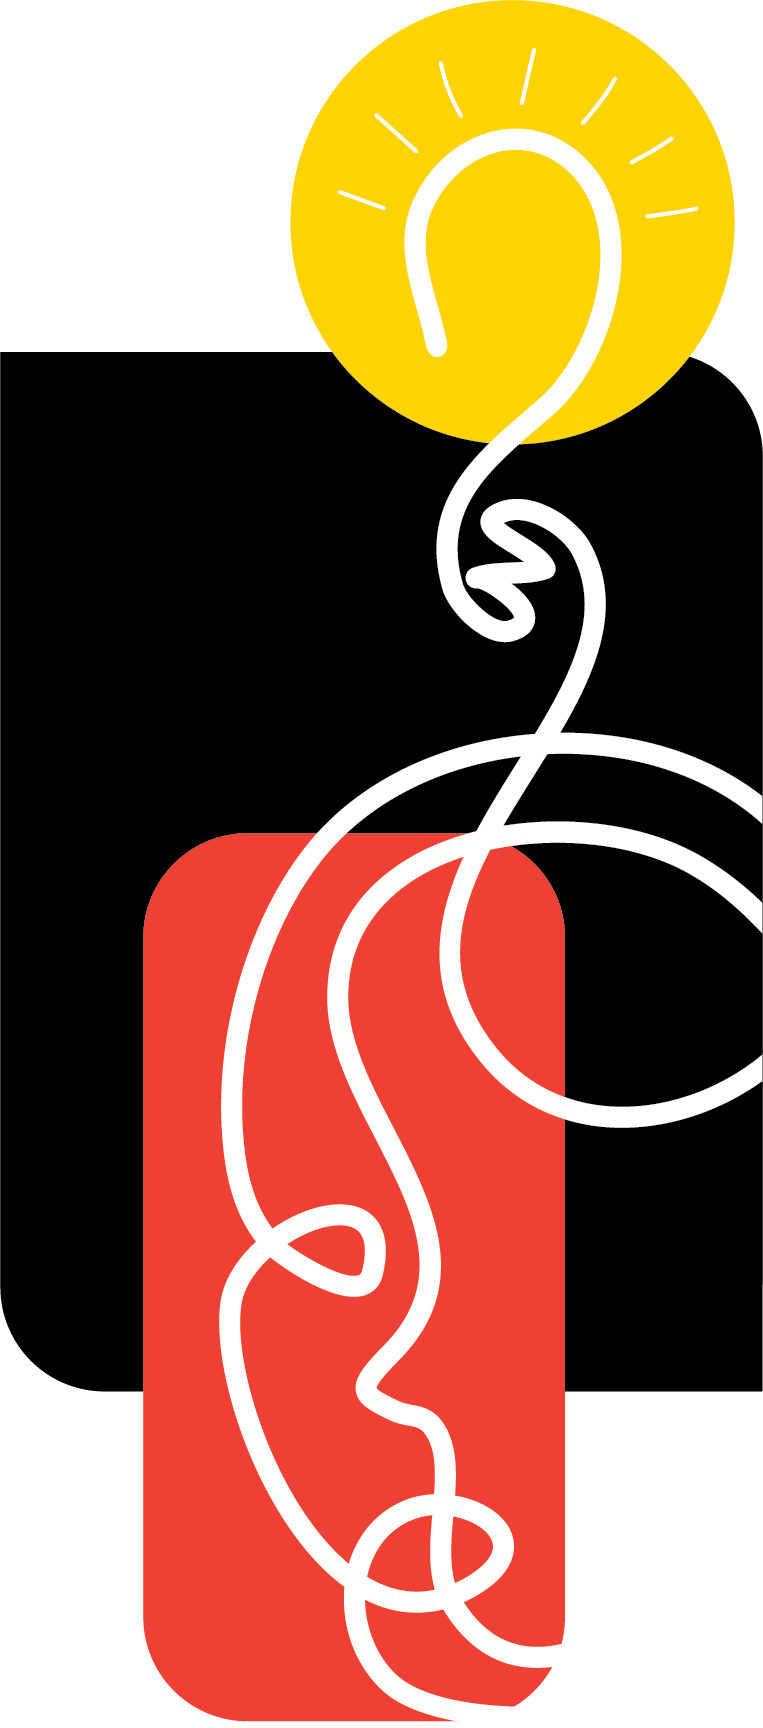 LOGO with transparent background